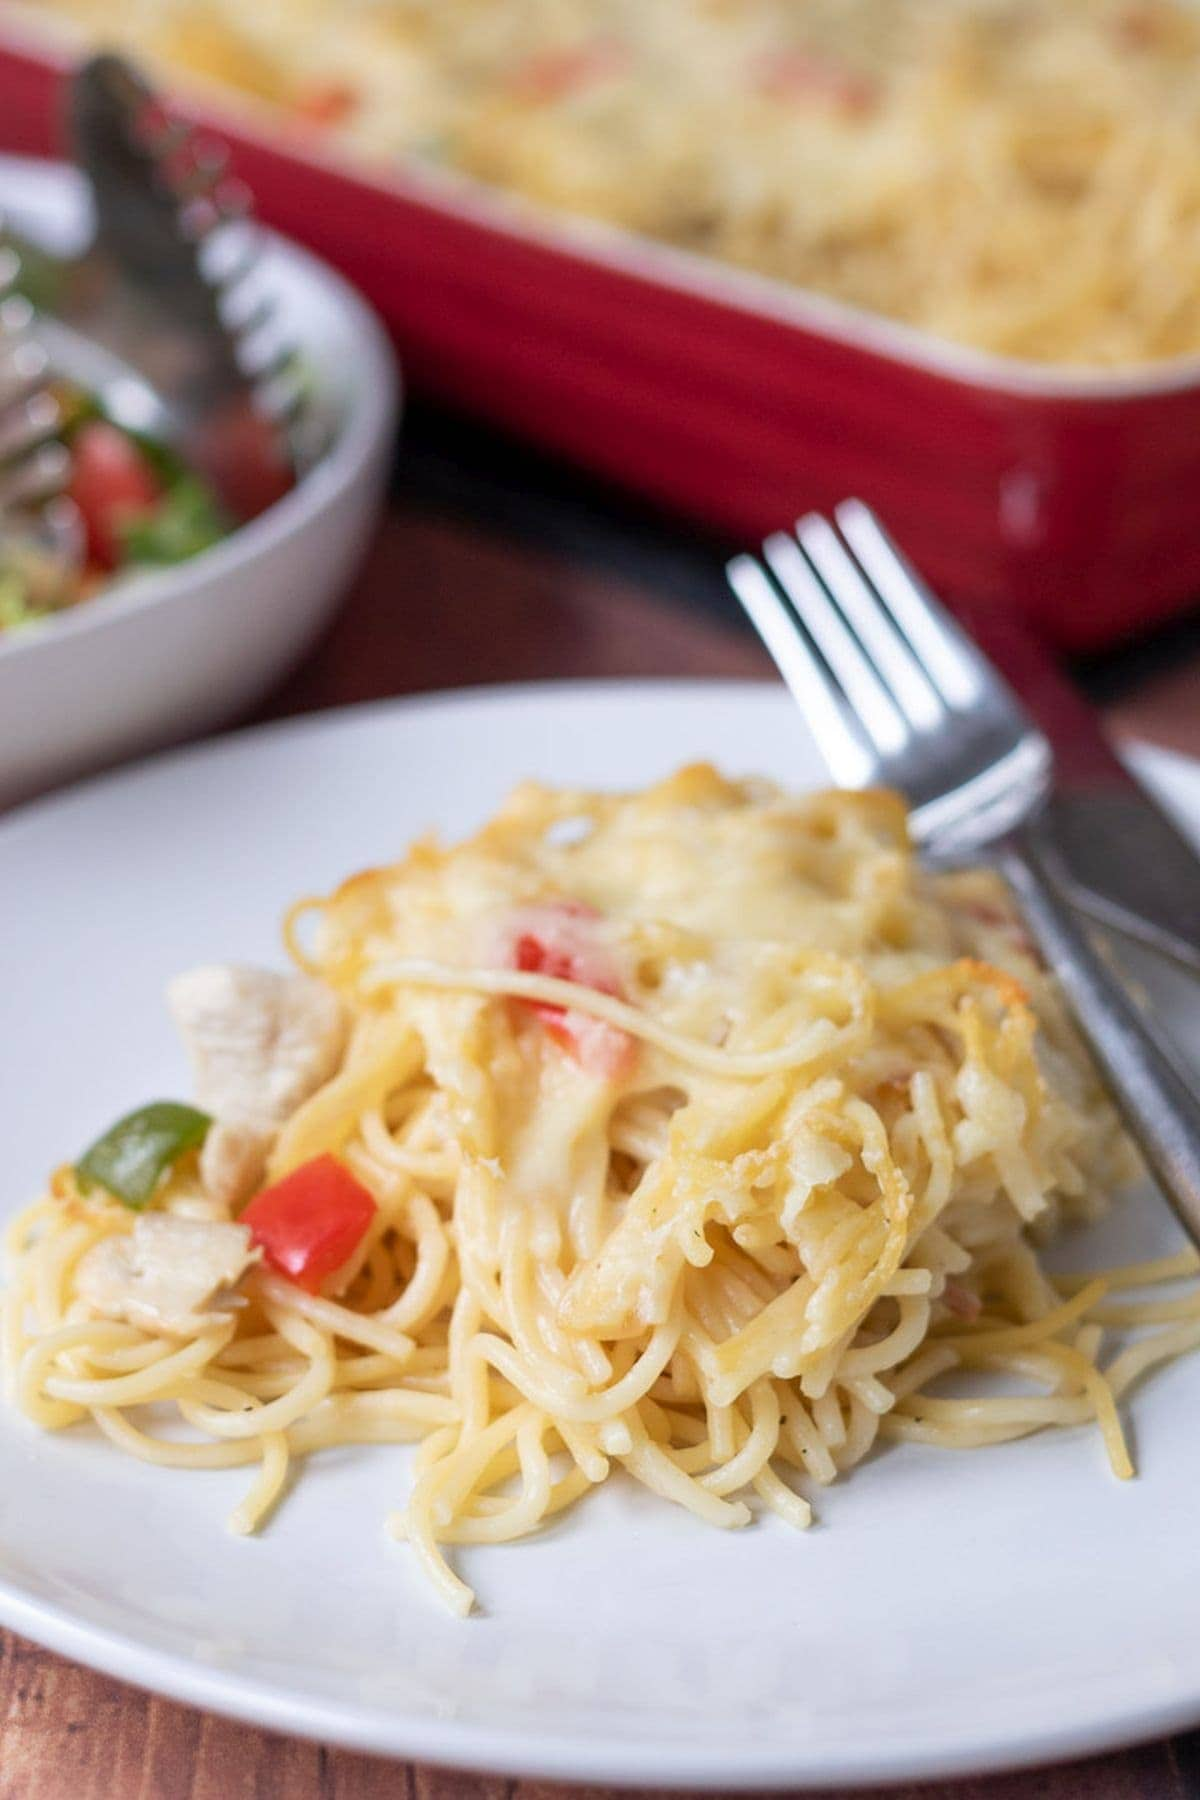 A plate with a portion of chicken spaghetti bake served on. Rest of the bake in a casserole dish in the background. A bowl of salad in between.